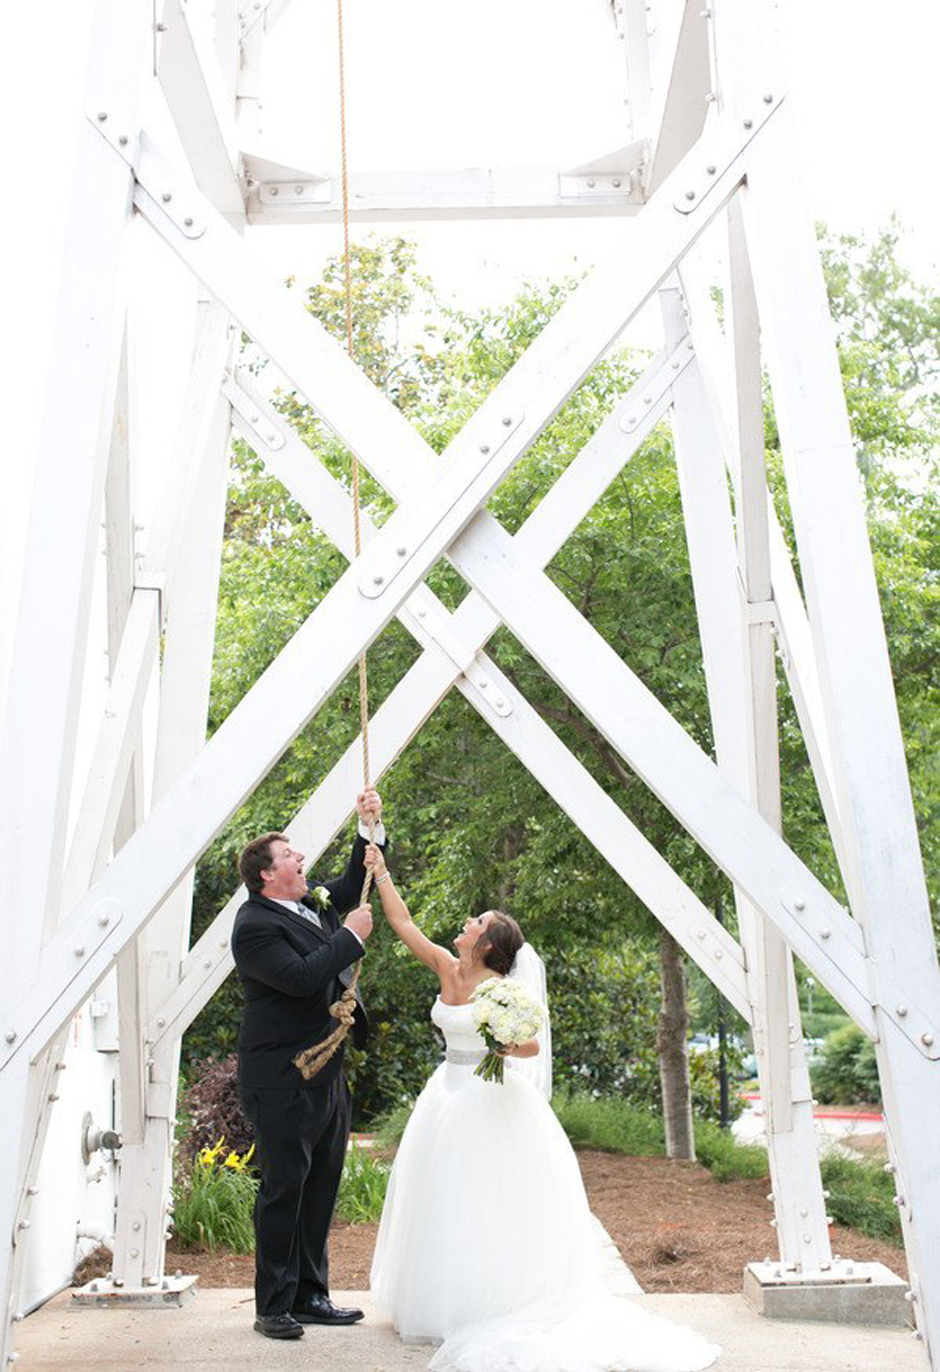 Former University of Georgia Football Player Ben Jones and new wife ring the UGA Chapel bell after their wedding ceremony - Oconee Events